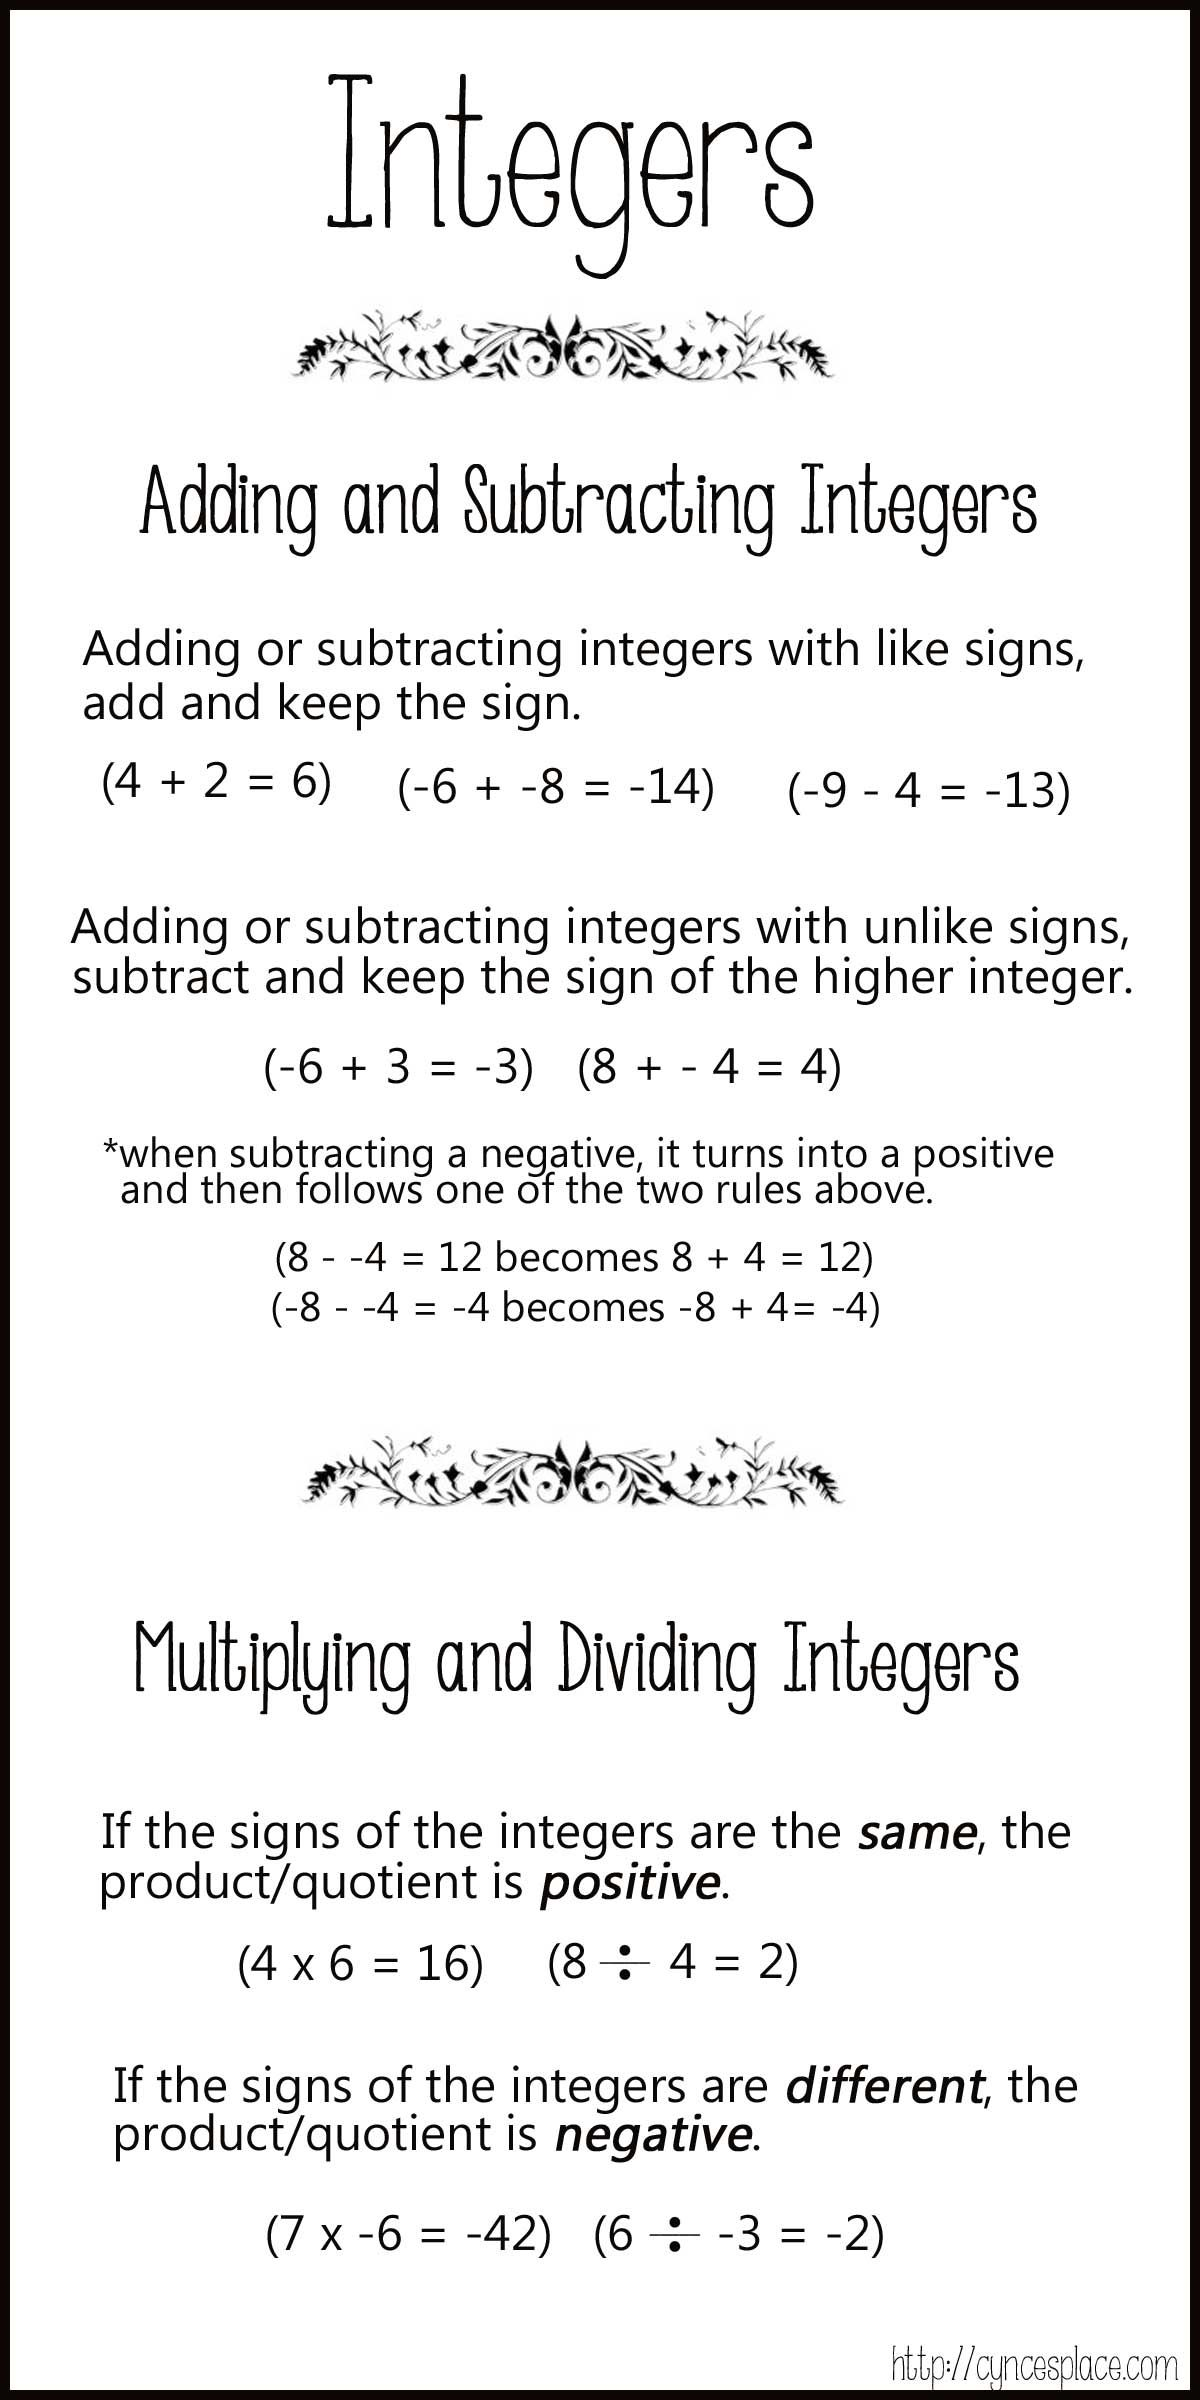 Ca Positivenegativeintegerb Jpg 1 200 2 400 Pixels Teaching Math Education Math Math Integers